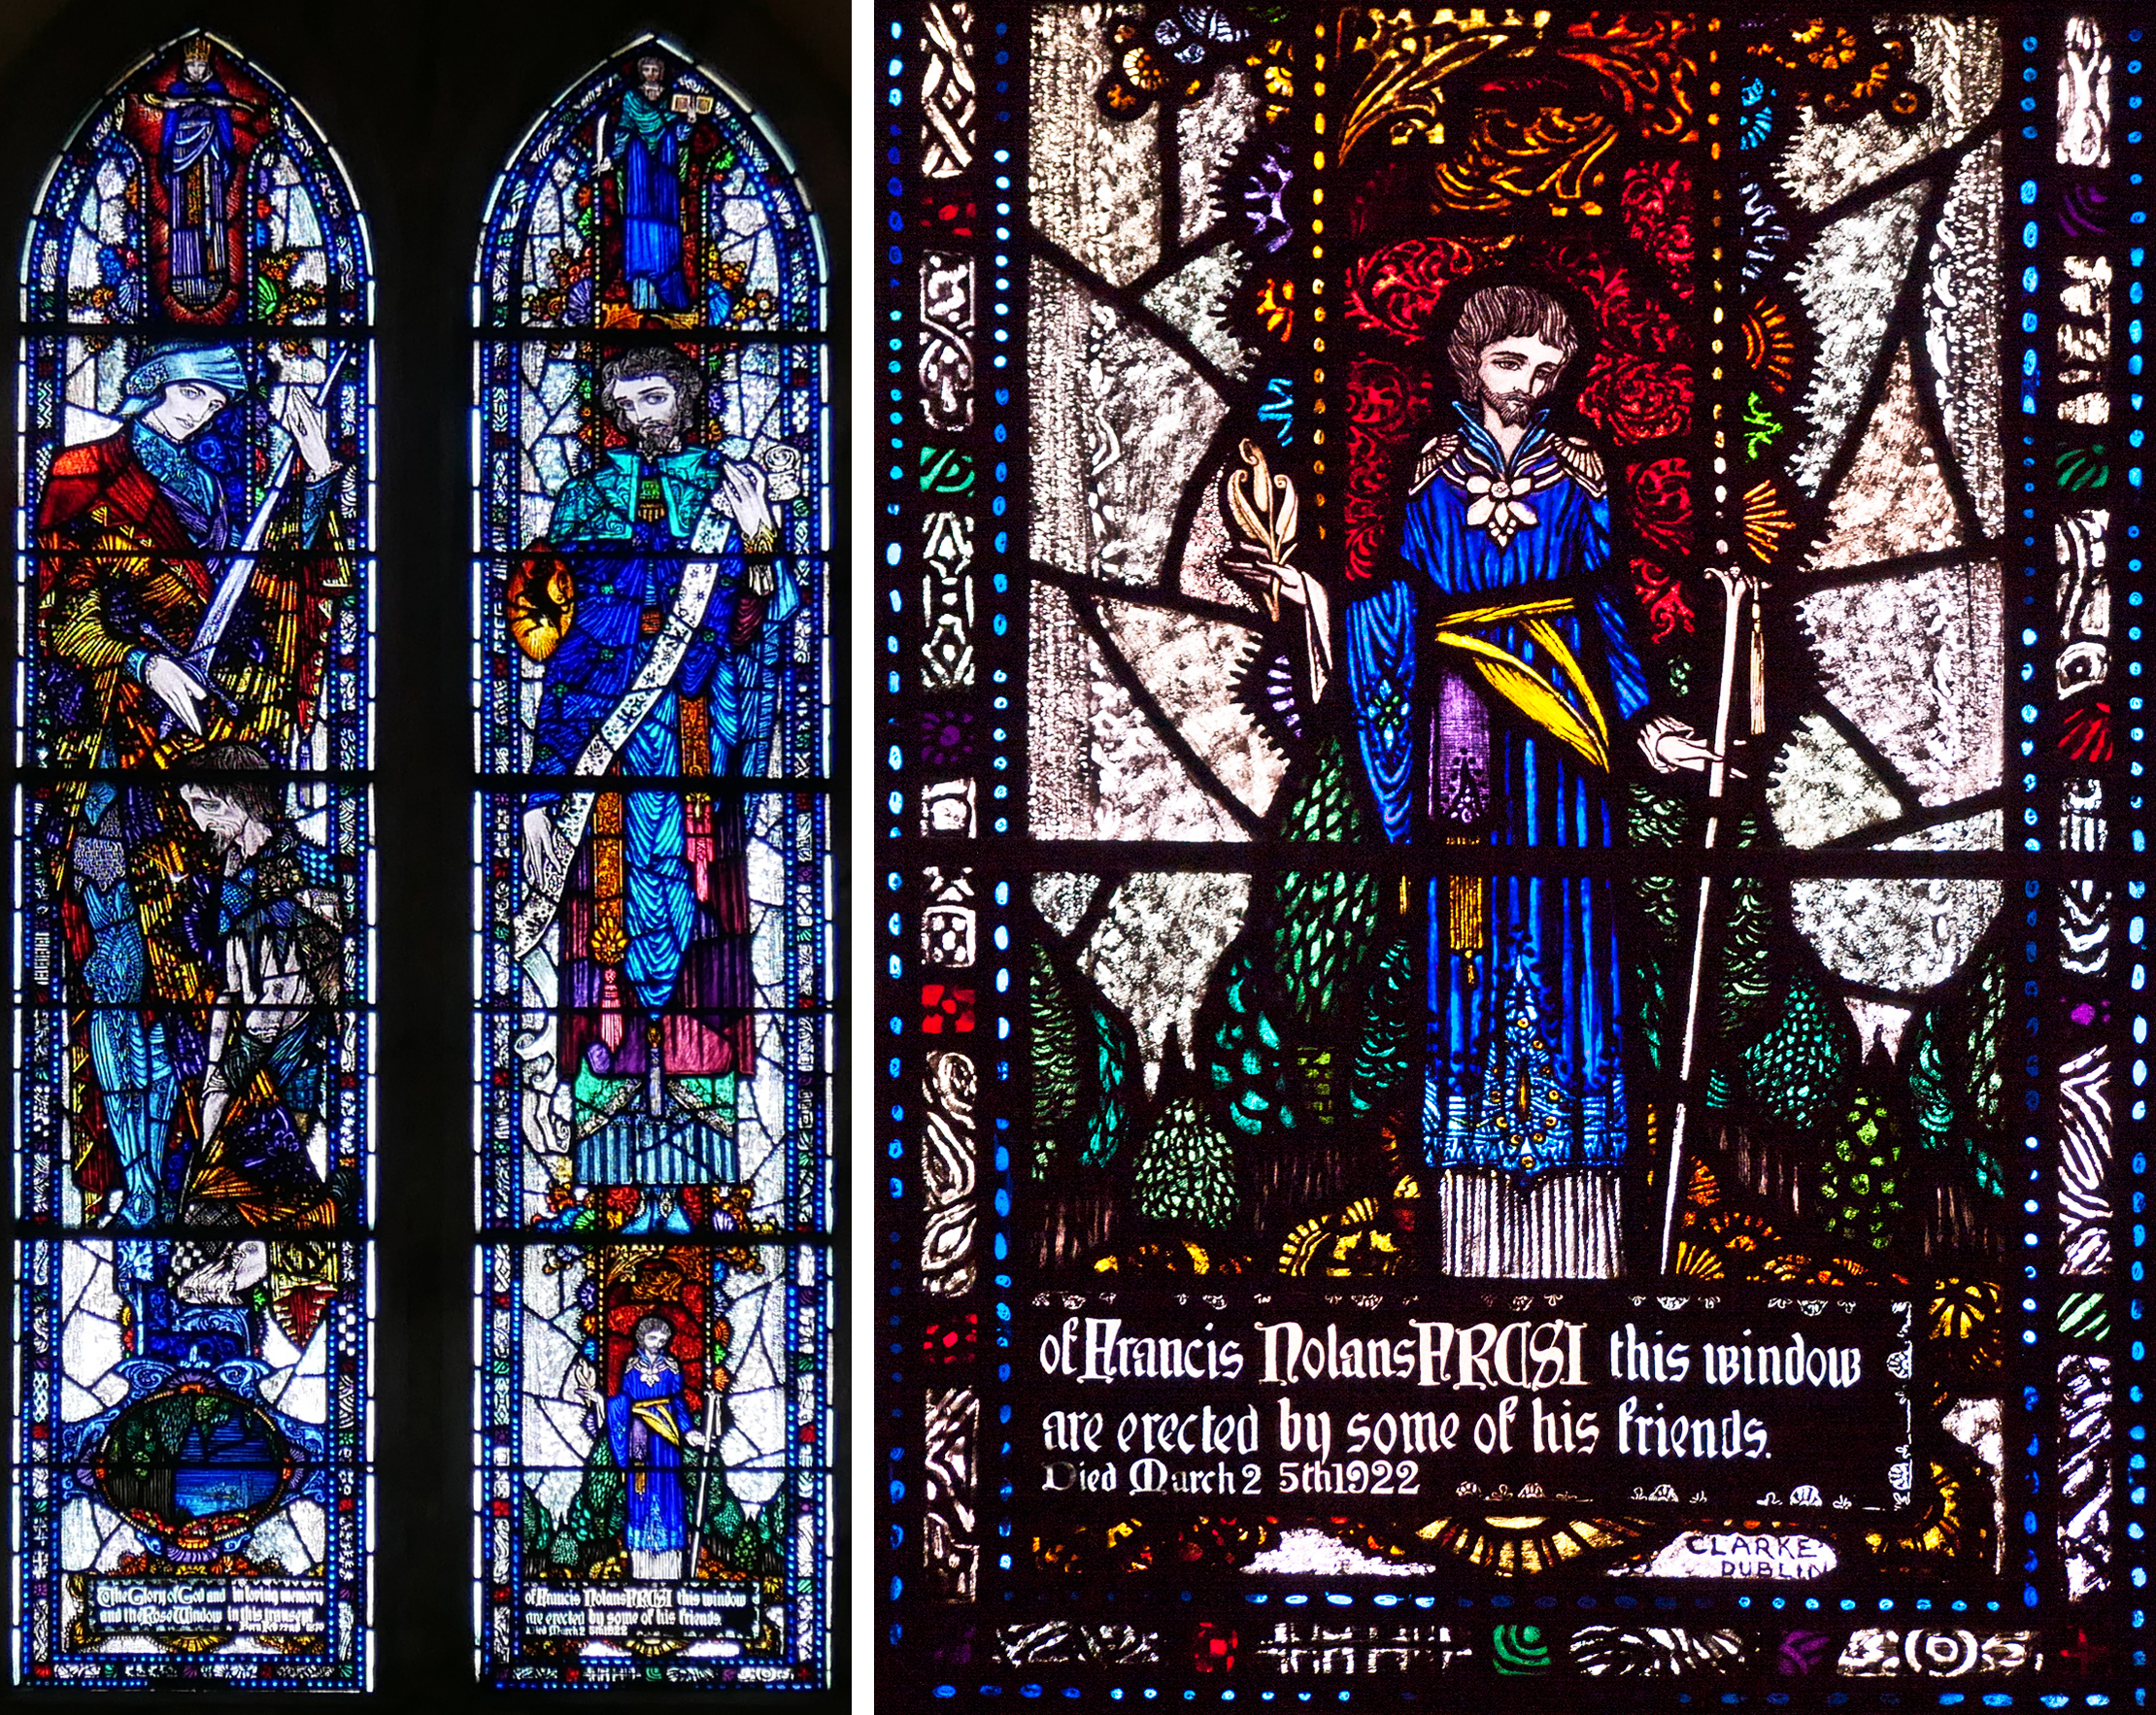 Christchurch, Church of Ireland, Gorey 1923 - St Martin and St Luke window and detail of St Luke